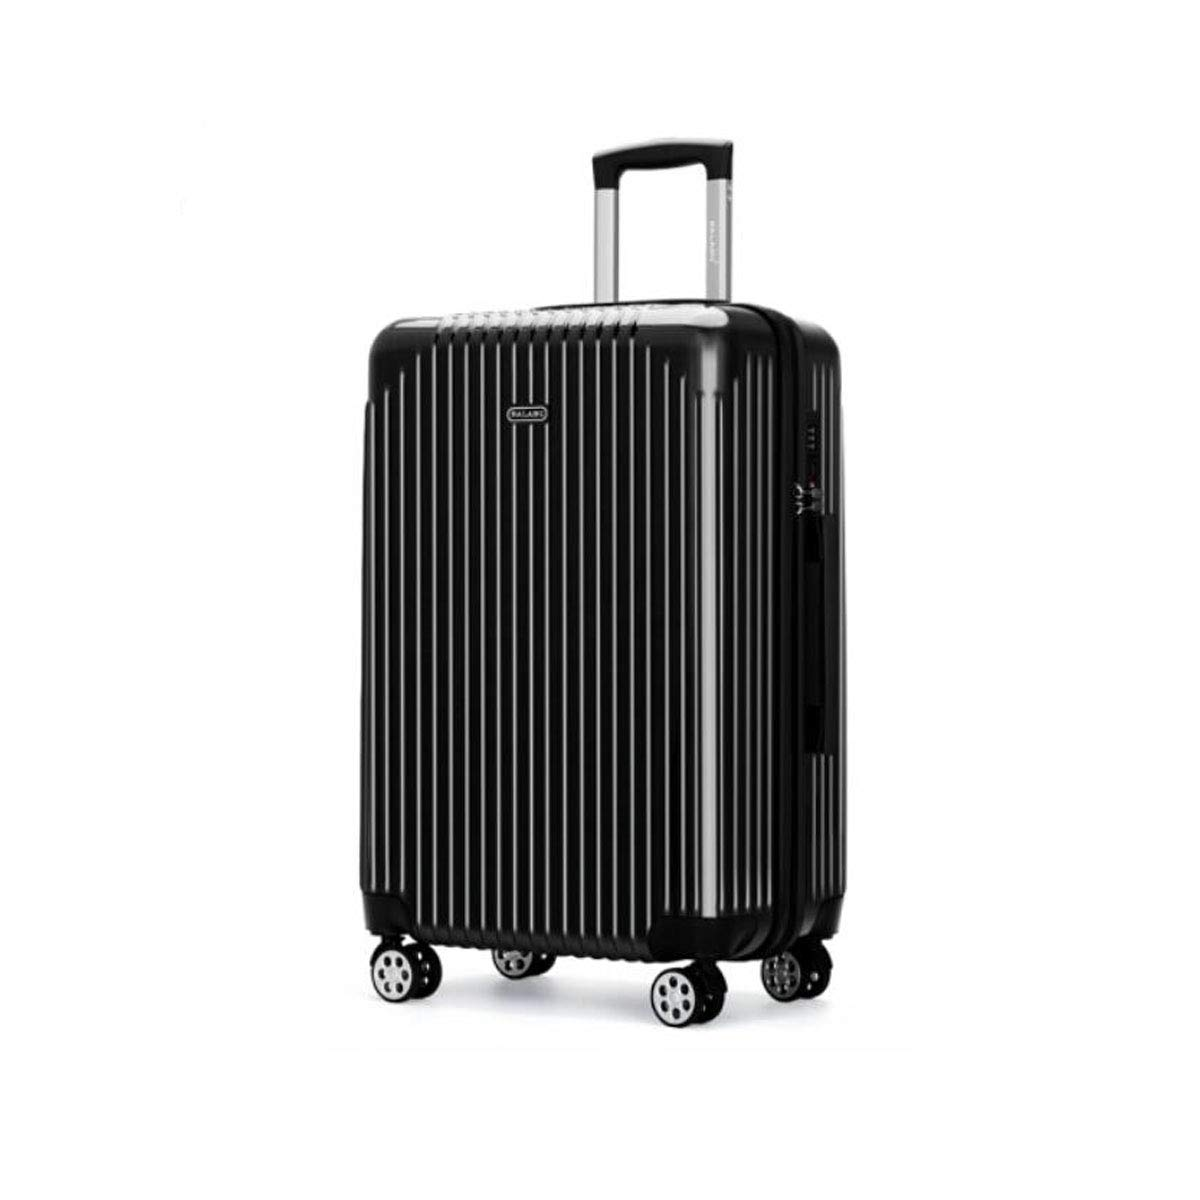 cm Color : White, Size : 182527 inch Size Aishanghuayi Suitcase for Large Capacity Business Portable Hard Shell Rotating Suitcase Black 37 22 57